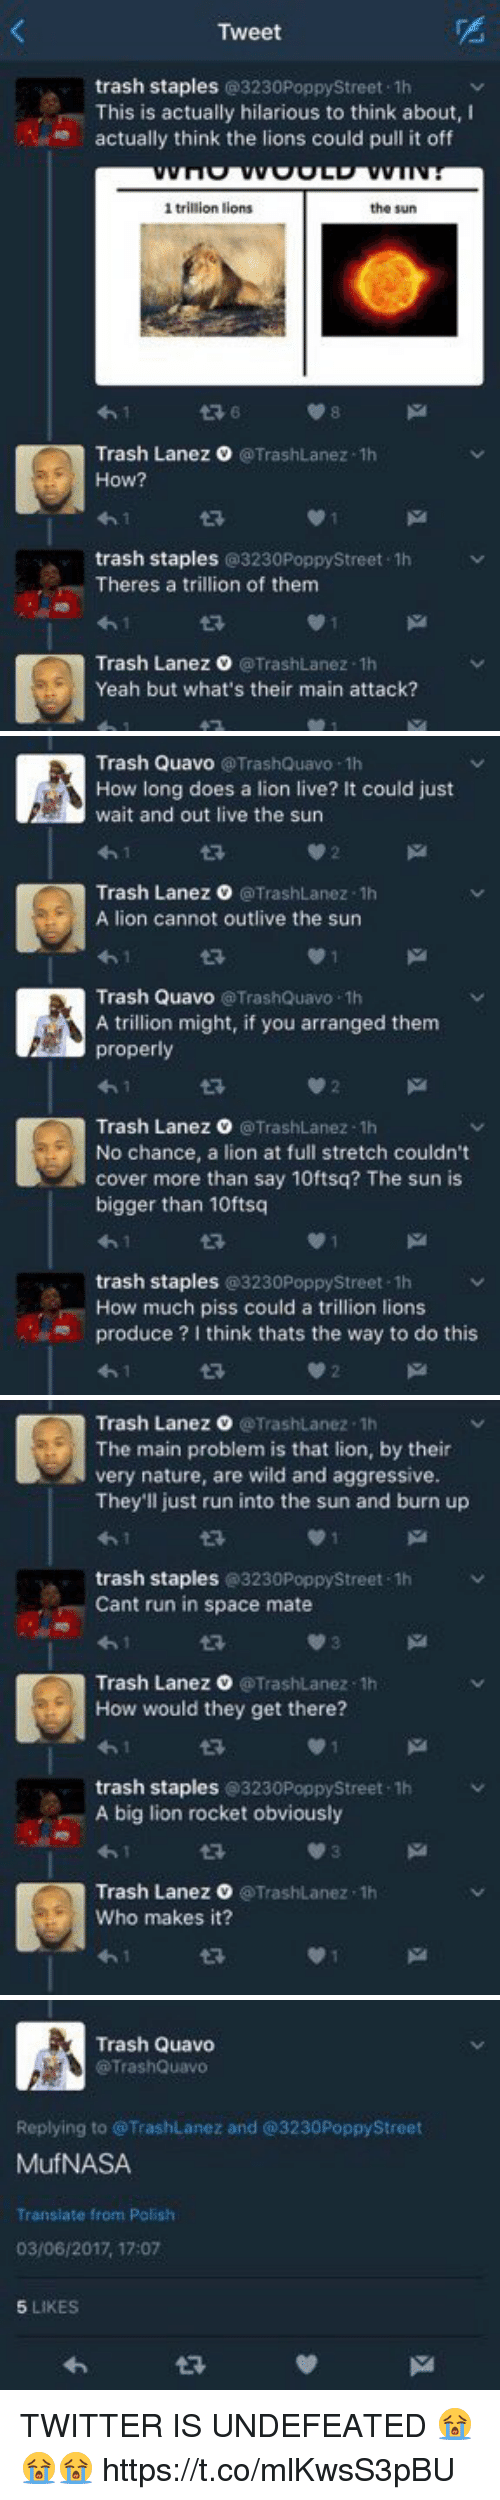 Memes, Quavo, and Run: Tweet  trash staples  @3230PoppyStreet 1h  This is actually hilarious to think about, I  actually think the lions could pull it off  1 trillion lions  the sun  Trash Lanez O @TrashLanez -1h  ow?  trash staples  @3230PoppyStreet 1h  Theres a trillion of them  Trash Lanez @Trash Lanez.1h  Yeah but what's their main attack?   Trash Quavo  Trash Quavo -1h  How long does a lion live? It could just  wait and out live the sun  Trash Lanez 0 @TrashLanez.1h  A lion cannot outlive the sun  Trash Quavo  (@TrashQuavo 1h  A trillion might, if you arranged them  properly  Trash Lanez o TrashLanez -1h  No chance, a lion at full stretch couldn't  cover more than say 10ftsq? The sun is  bigger than 10ftsq  trash staples  @3230PoppyStreet 1h  How much piss could a trillion lions  produce  I think thats the way to do this   Trash Lanez @Trashuanez.1h  The main problem is that lion, by their  very nature, are wild and aggressive.  They'll just run into the sun and burn up  trash staples  @323  Street F1h  0Poppy Cant run in space mate  Trash Lanez O TrashLanez -1h  How would they get there?  trash staples  3230Poppystreet.1h  A big lion rocket obviously  Trash Lanez O @TrashLanez.1h  who makes it?   Trash Quavo  @TrashQuavo  Replying to @TrashLanez and 3230PoppyStreet  MufNASA  Translate from Polish  03/06/2017, 17:07  5 LIKES TWITTER IS UNDEFEATED 😭😭😭 https://t.co/mlKwsS3pBU